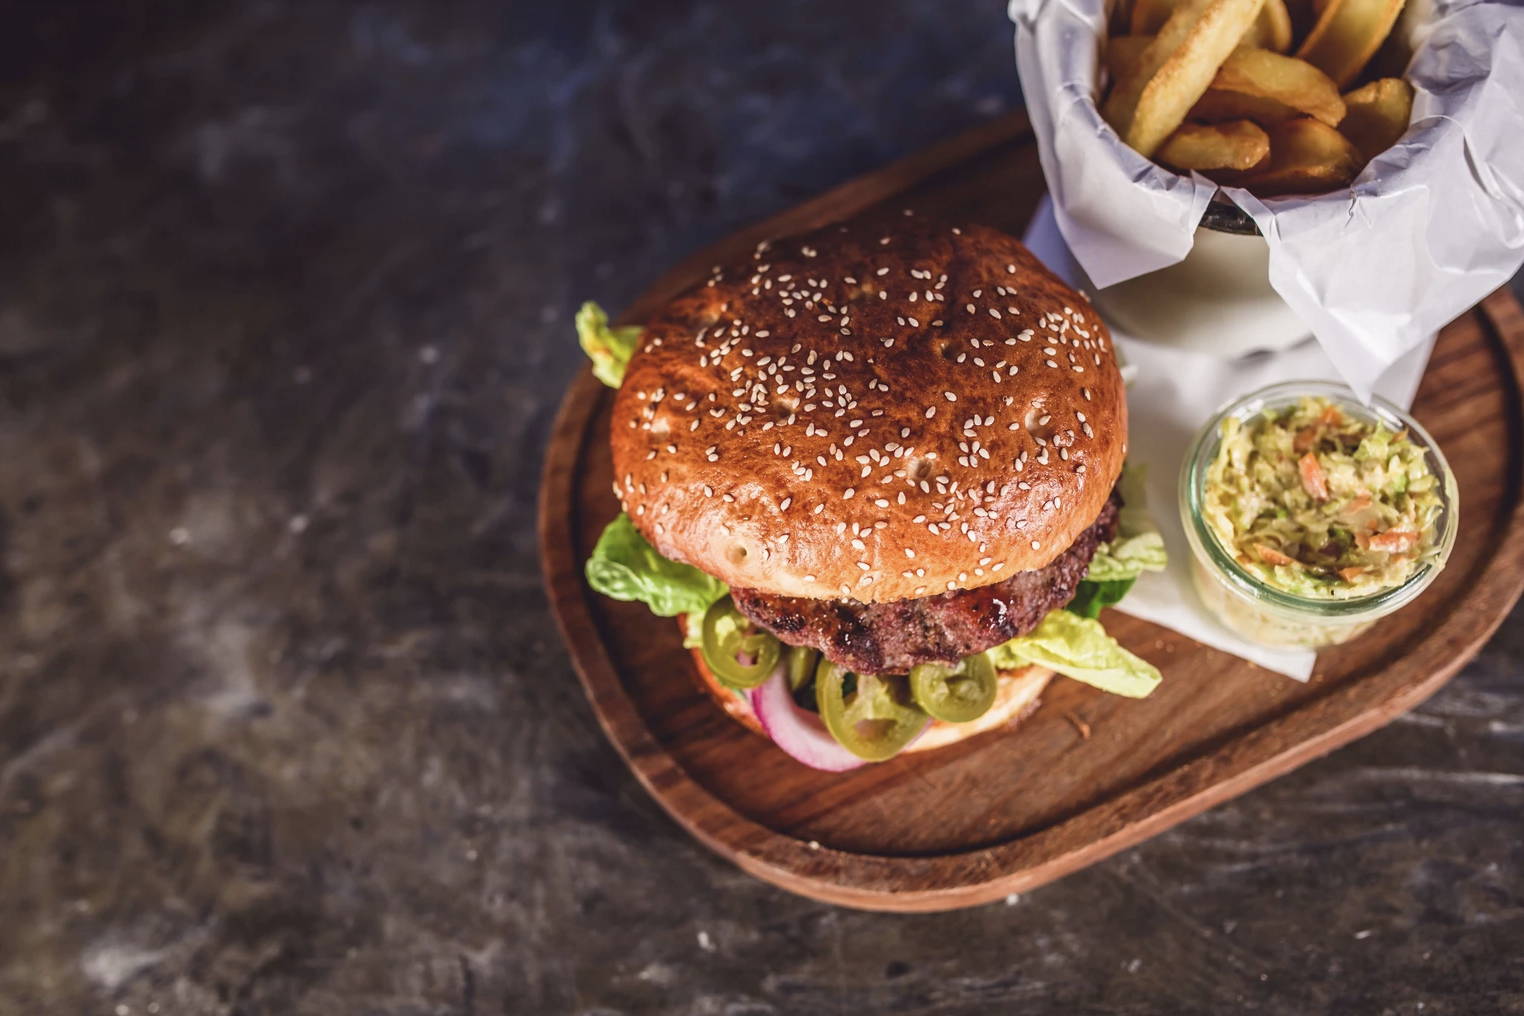 A veggie burger on a wooden plate with fries